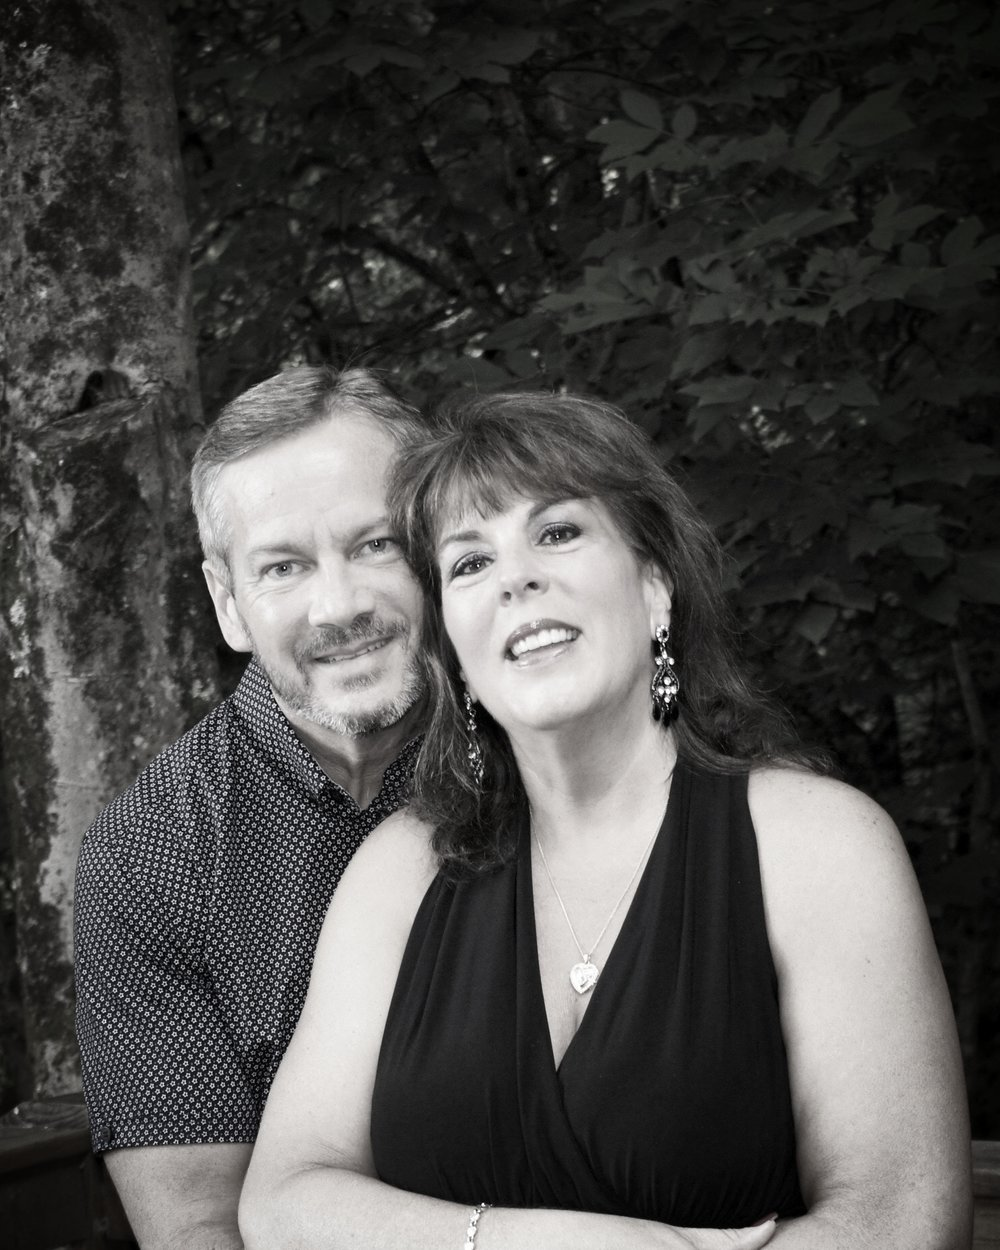 Tony & Denise Cowan - Senior Pastors of Church 316